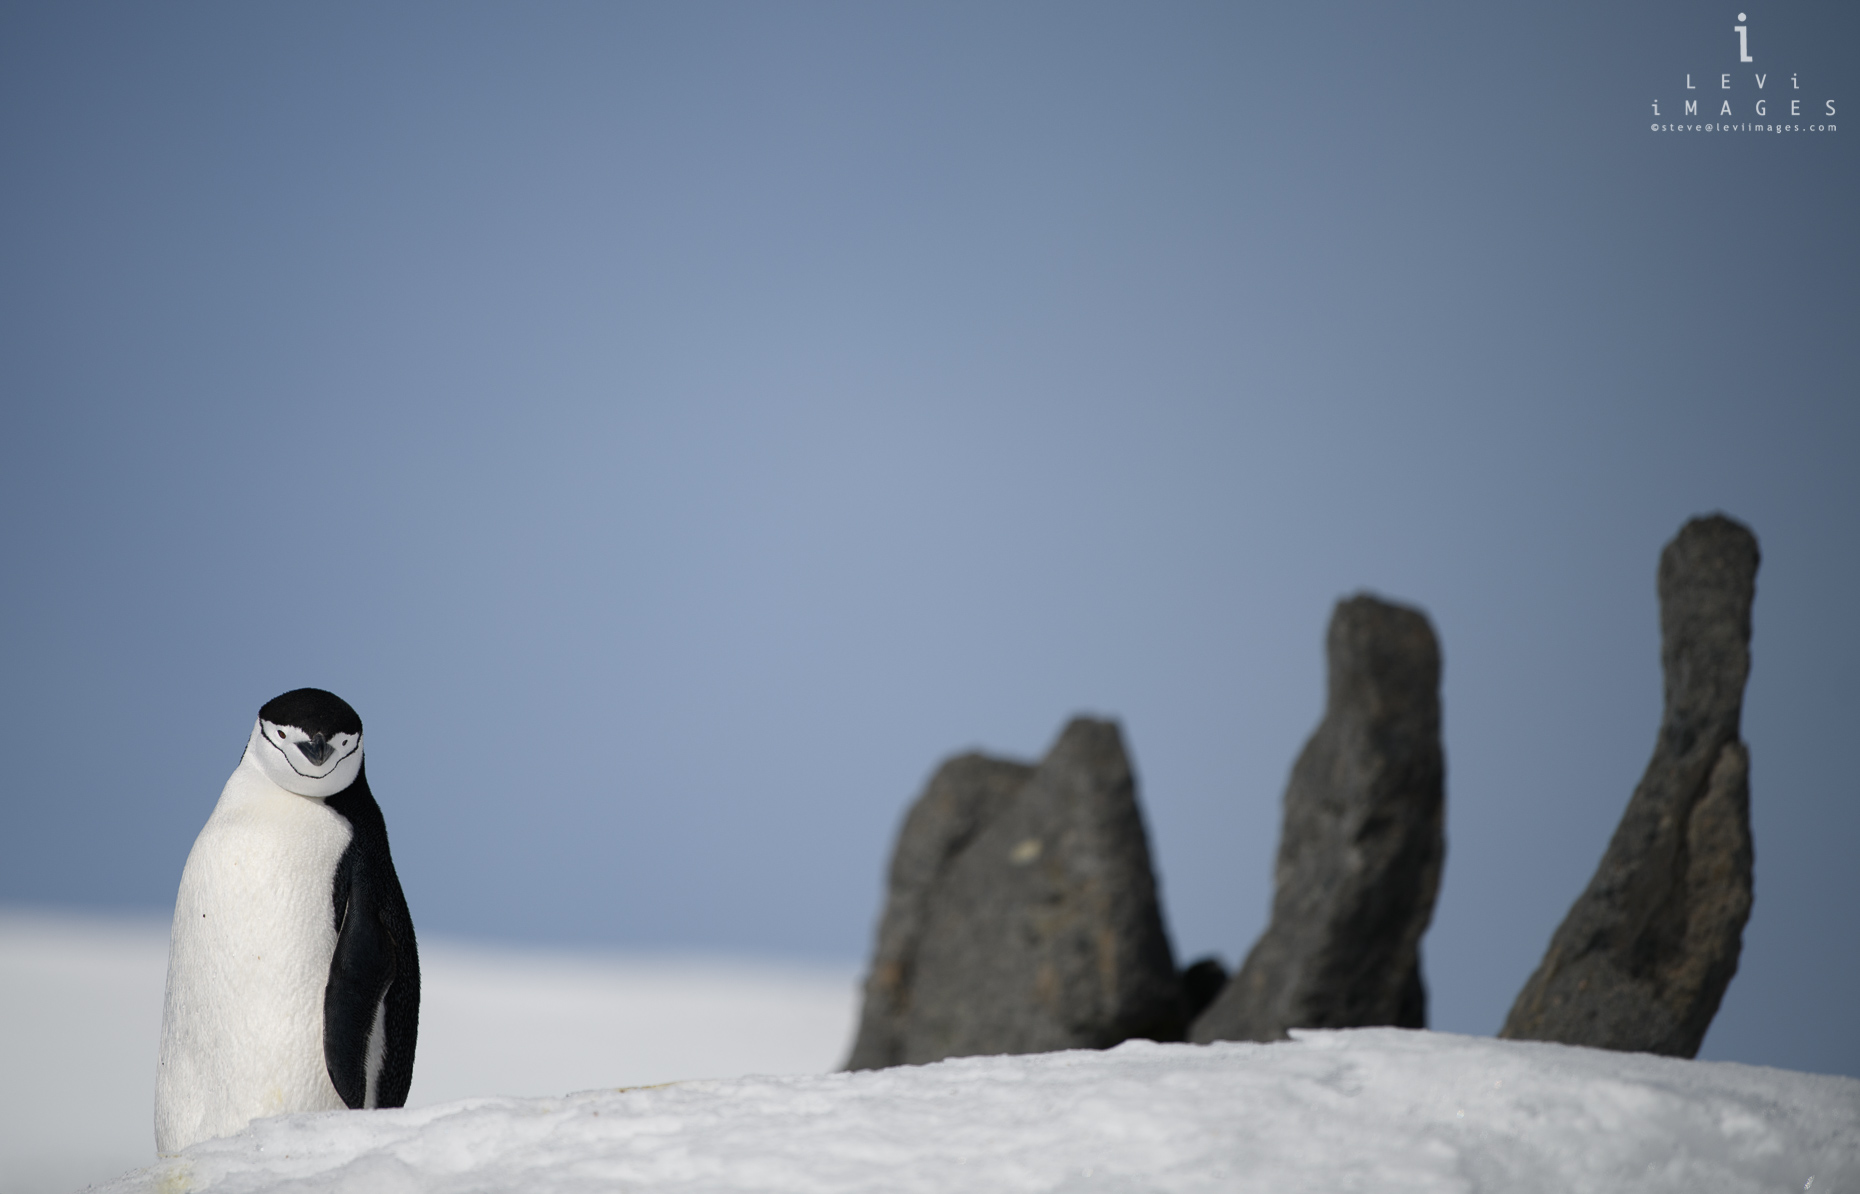 Chinstrap penguin (Pygoscelis antarcticus) on snow with stone structure. Gourdin Island, Antarctica